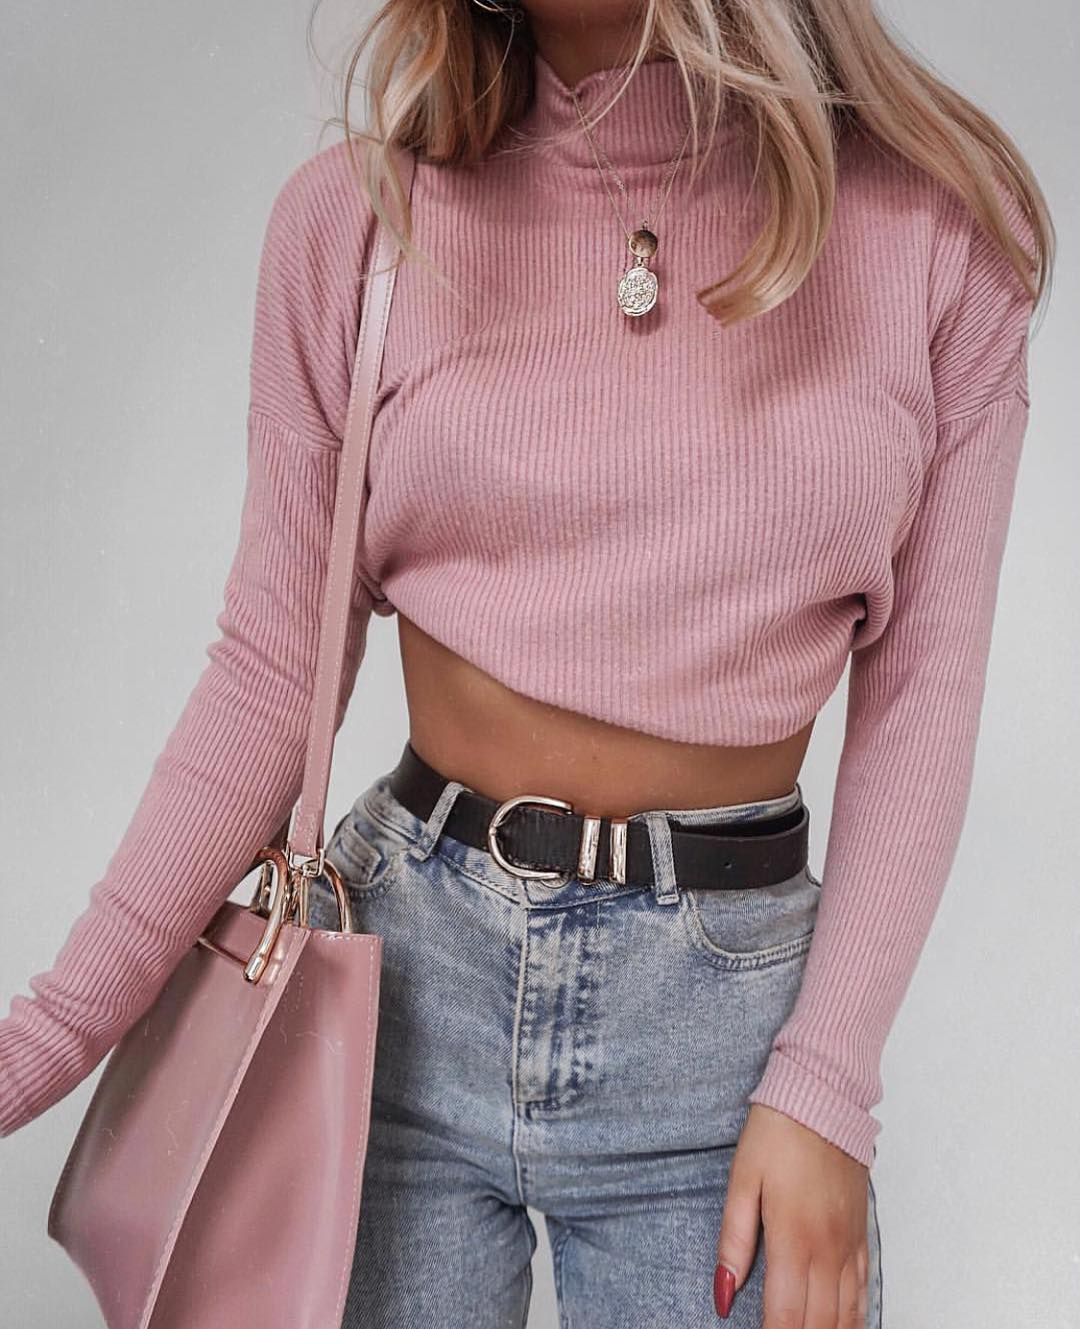 How To Wear Light Pink Slim Crop Sweater This Fall 2021